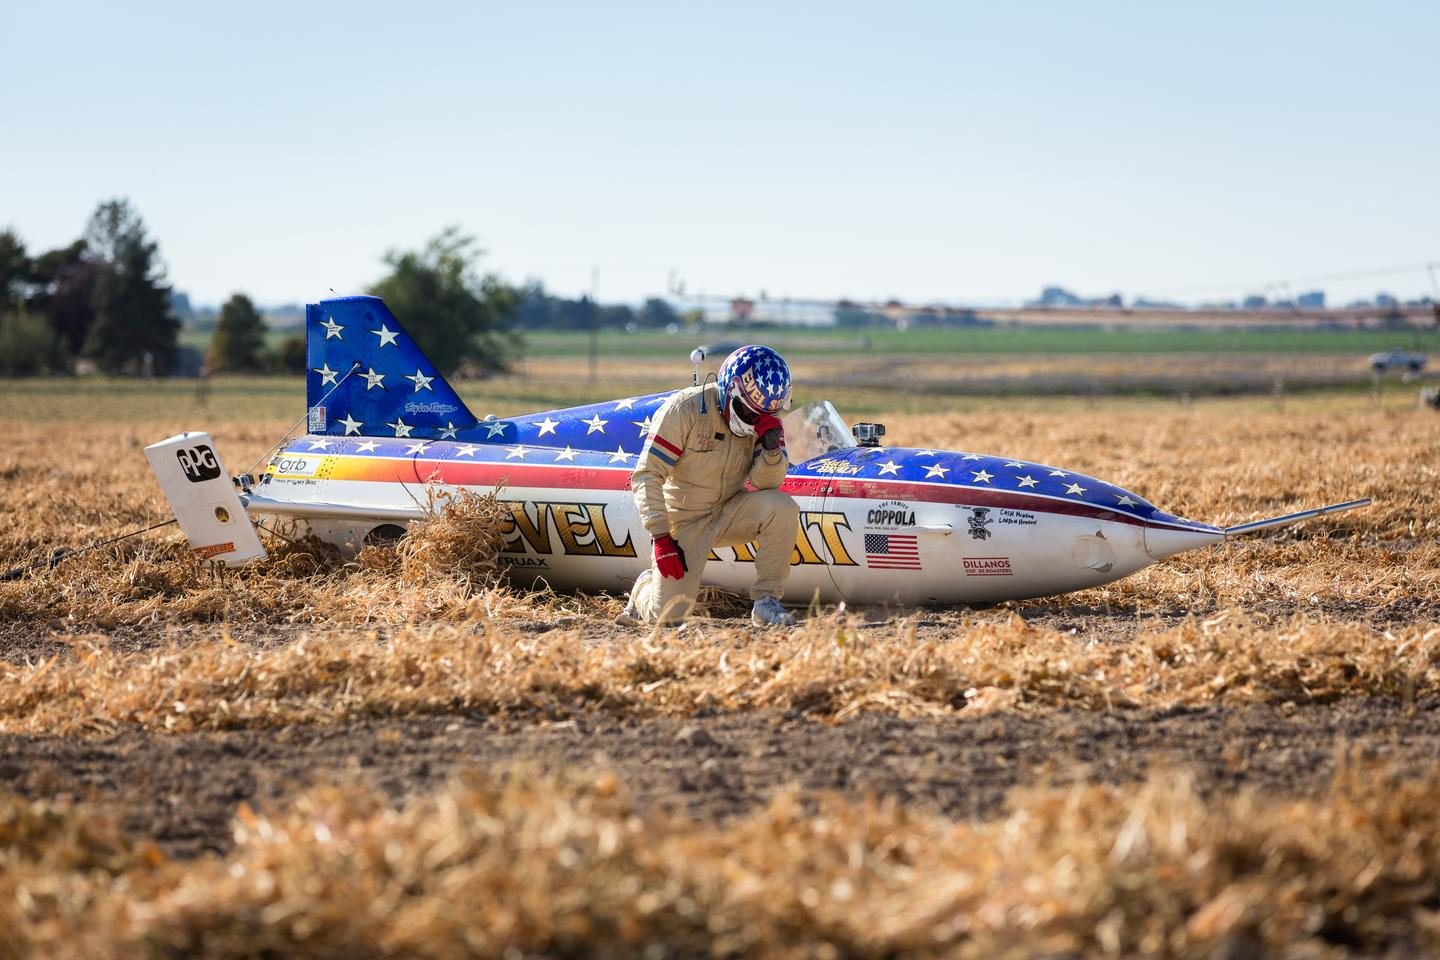 The Evel Spirit landed in a bean field more than a mile downrange. It took several minutes for the crew to reach Braun